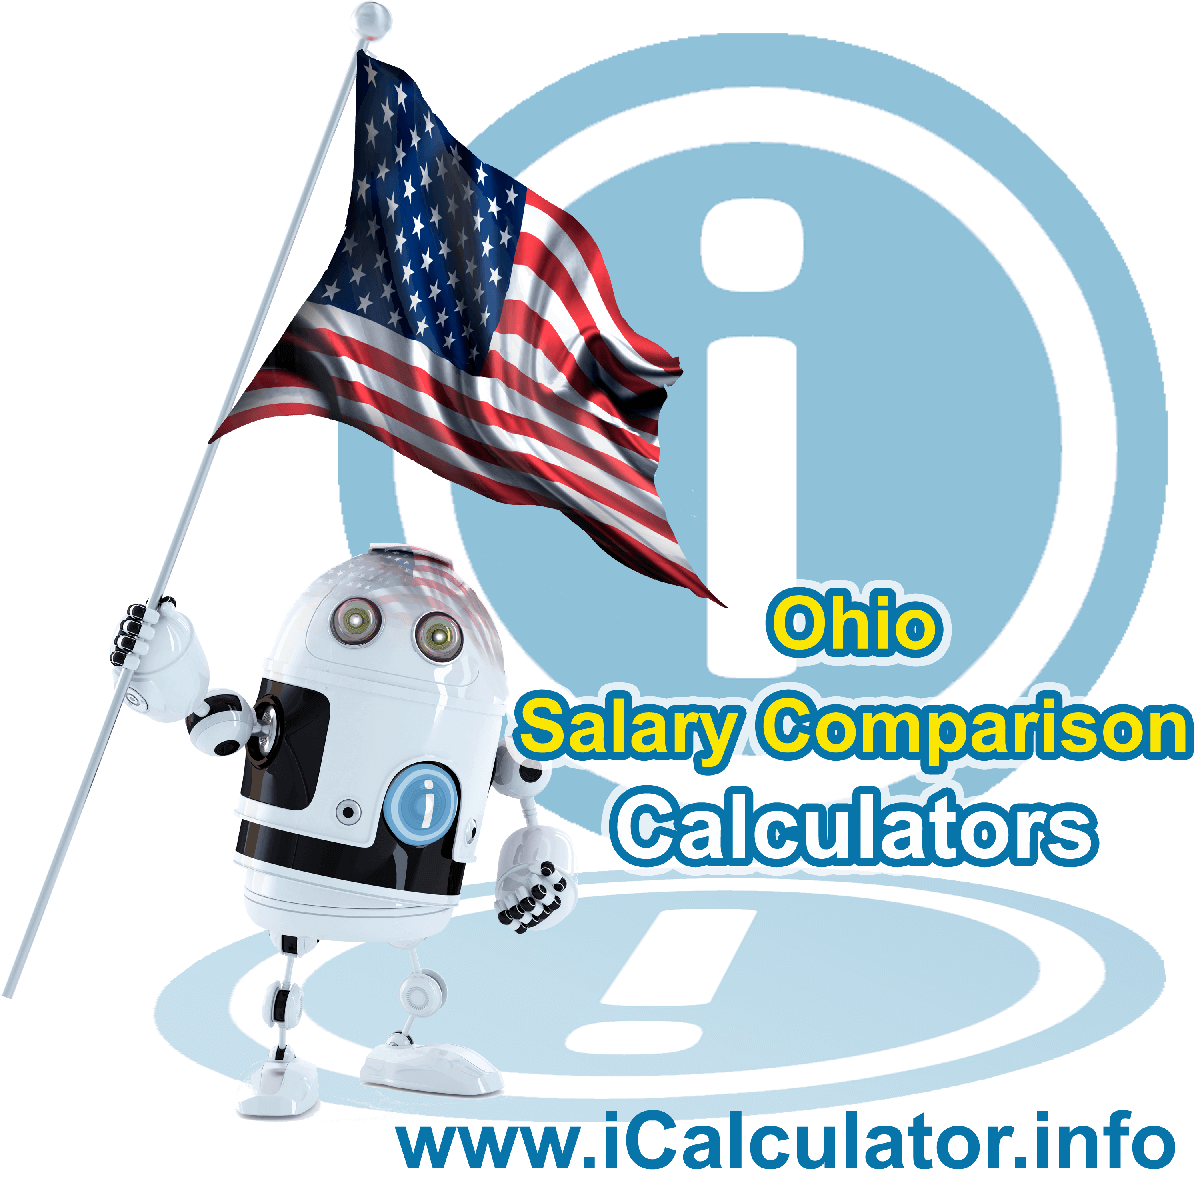 Ohio Salary Comparison Calculator 2021 | iCalculator™ | The Ohio Salary Comparison Calculator allows you to quickly calculate and compare upto 6 salaries in Ohio or between other states for the 2021 tax year and historical tax years. Its an excellent tool for jobseekers, pay raise comparison and comparison of salaries between different US States